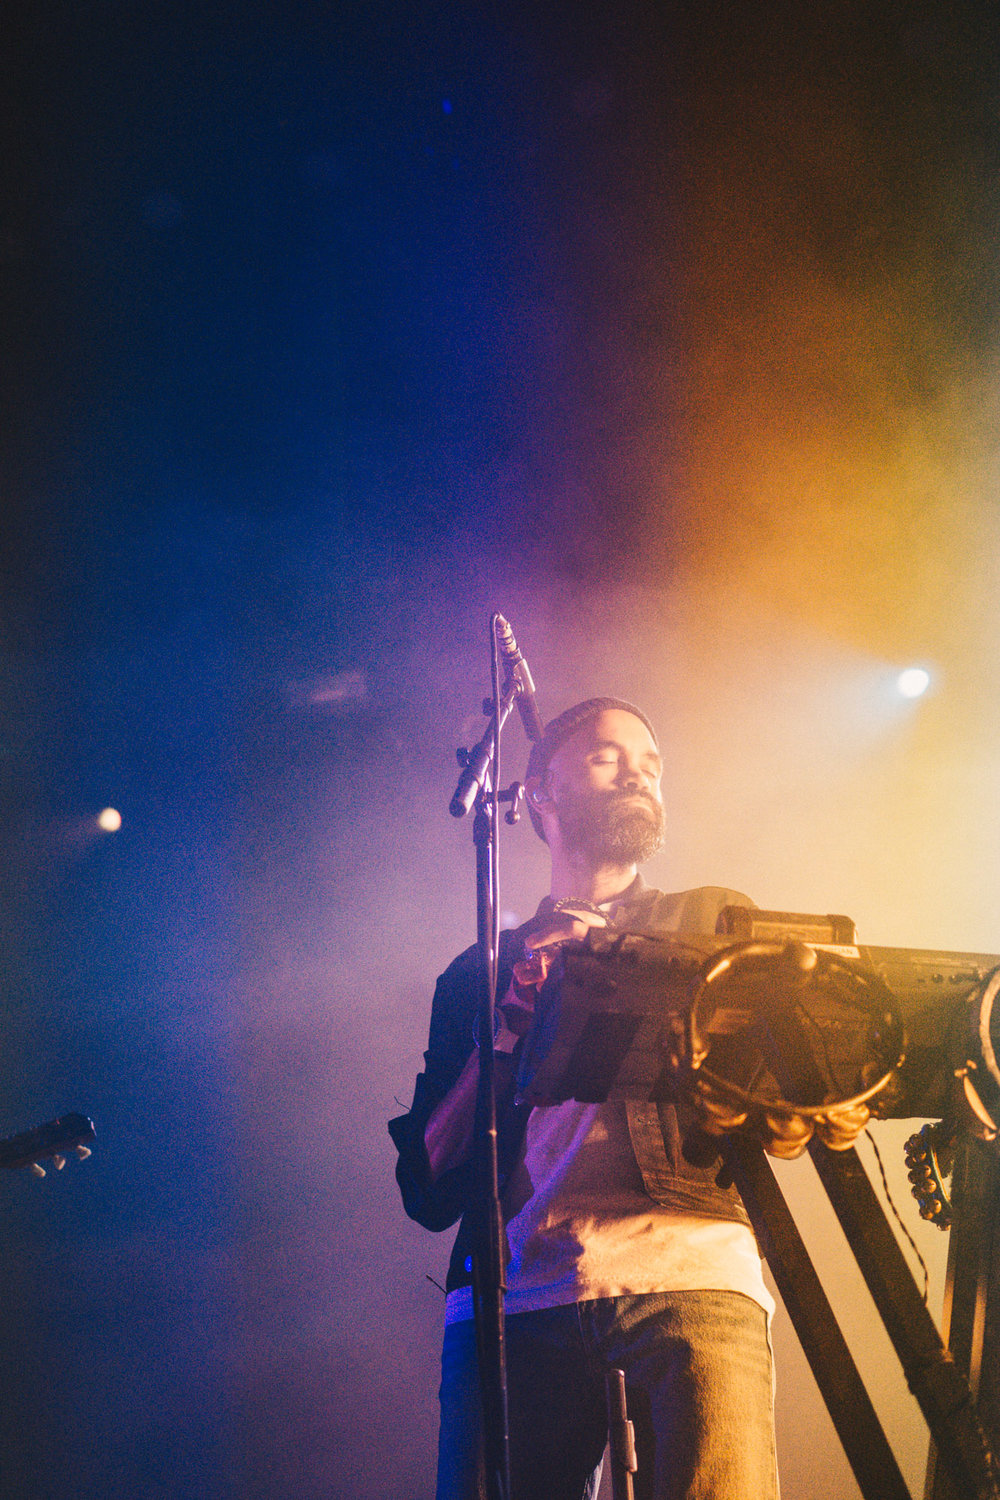 Fleet Foxes - Britton Strickland (12 of 16).jpg